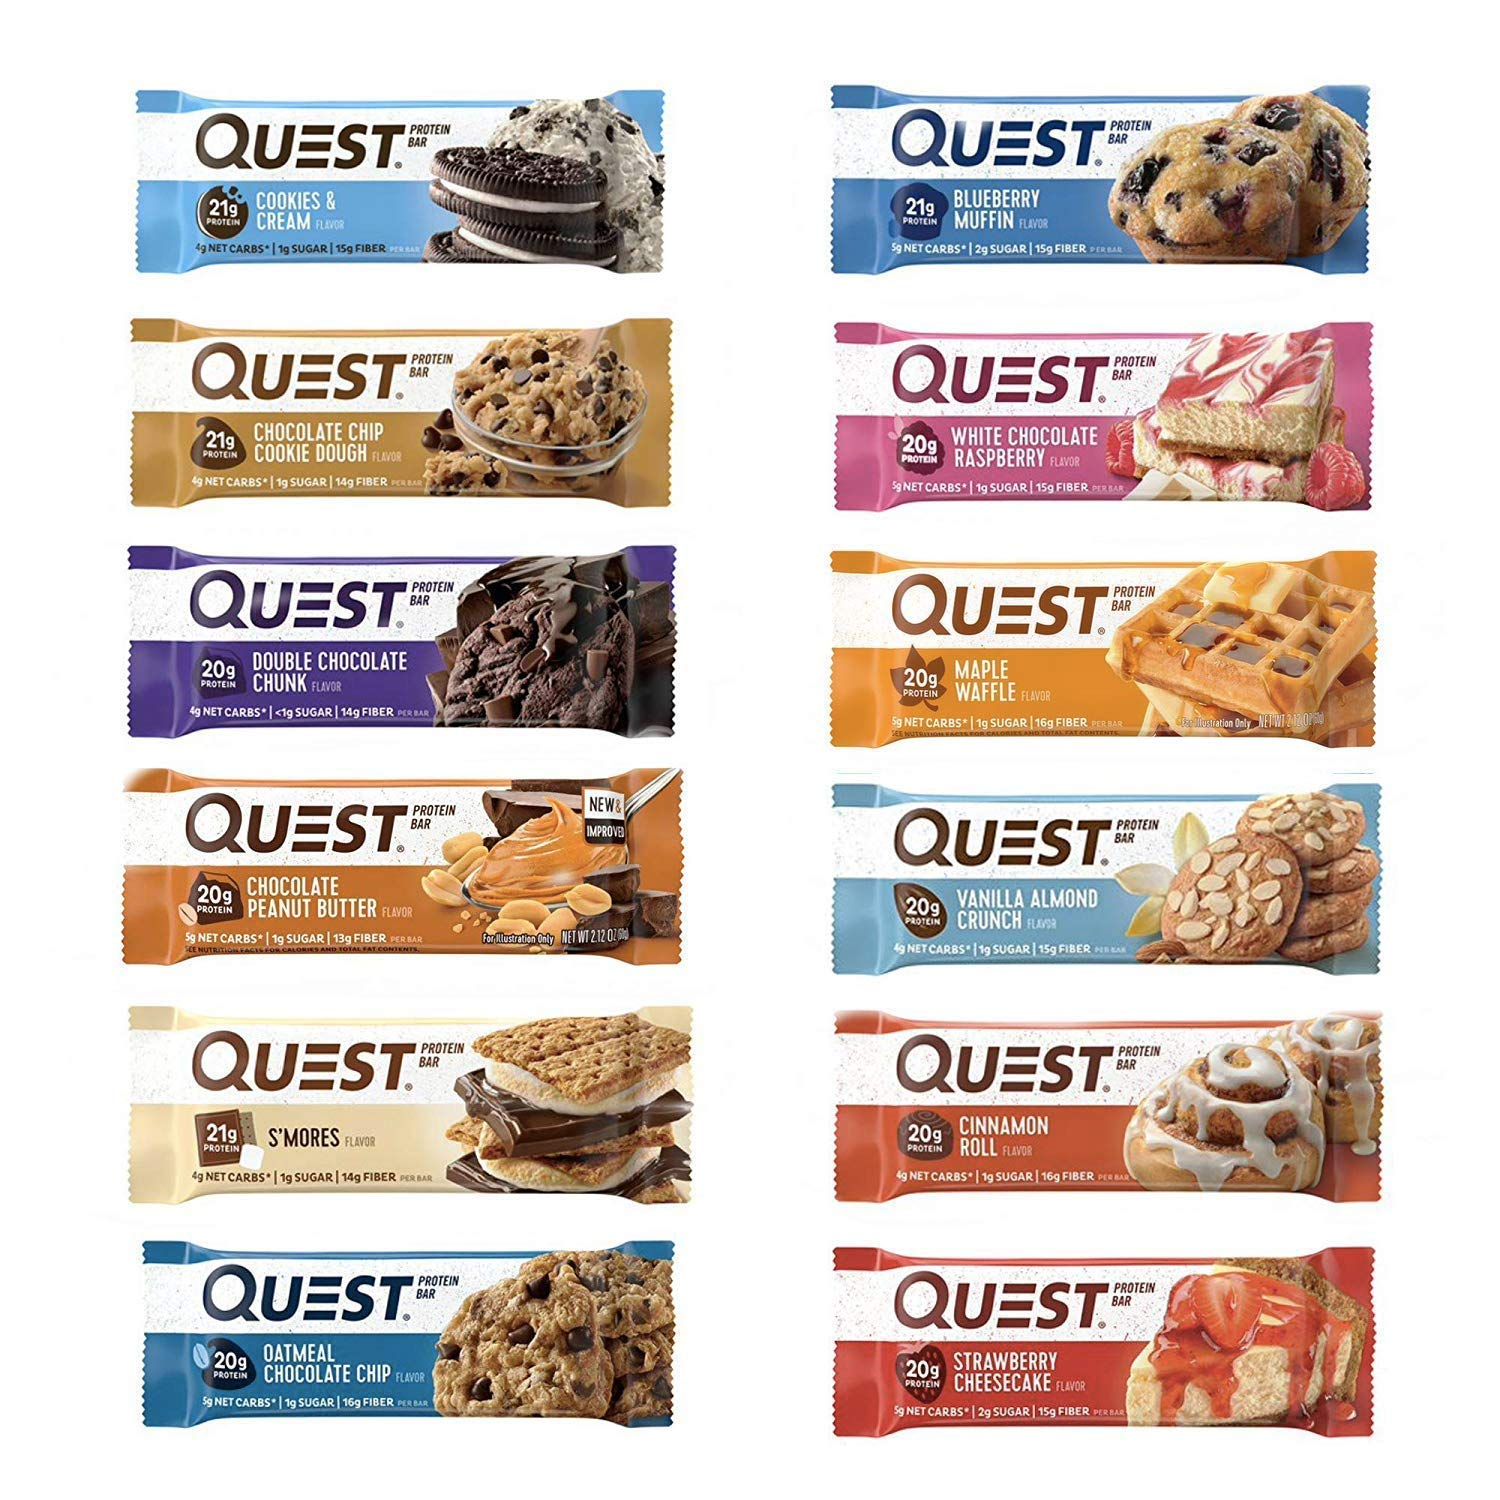 Quest Nutrition Protein Bar Adventure Variety Pack. Low Carb Meal Replacement Bar with 20 Gram Protein. High Fiber, Gluten-Free (24 Count)